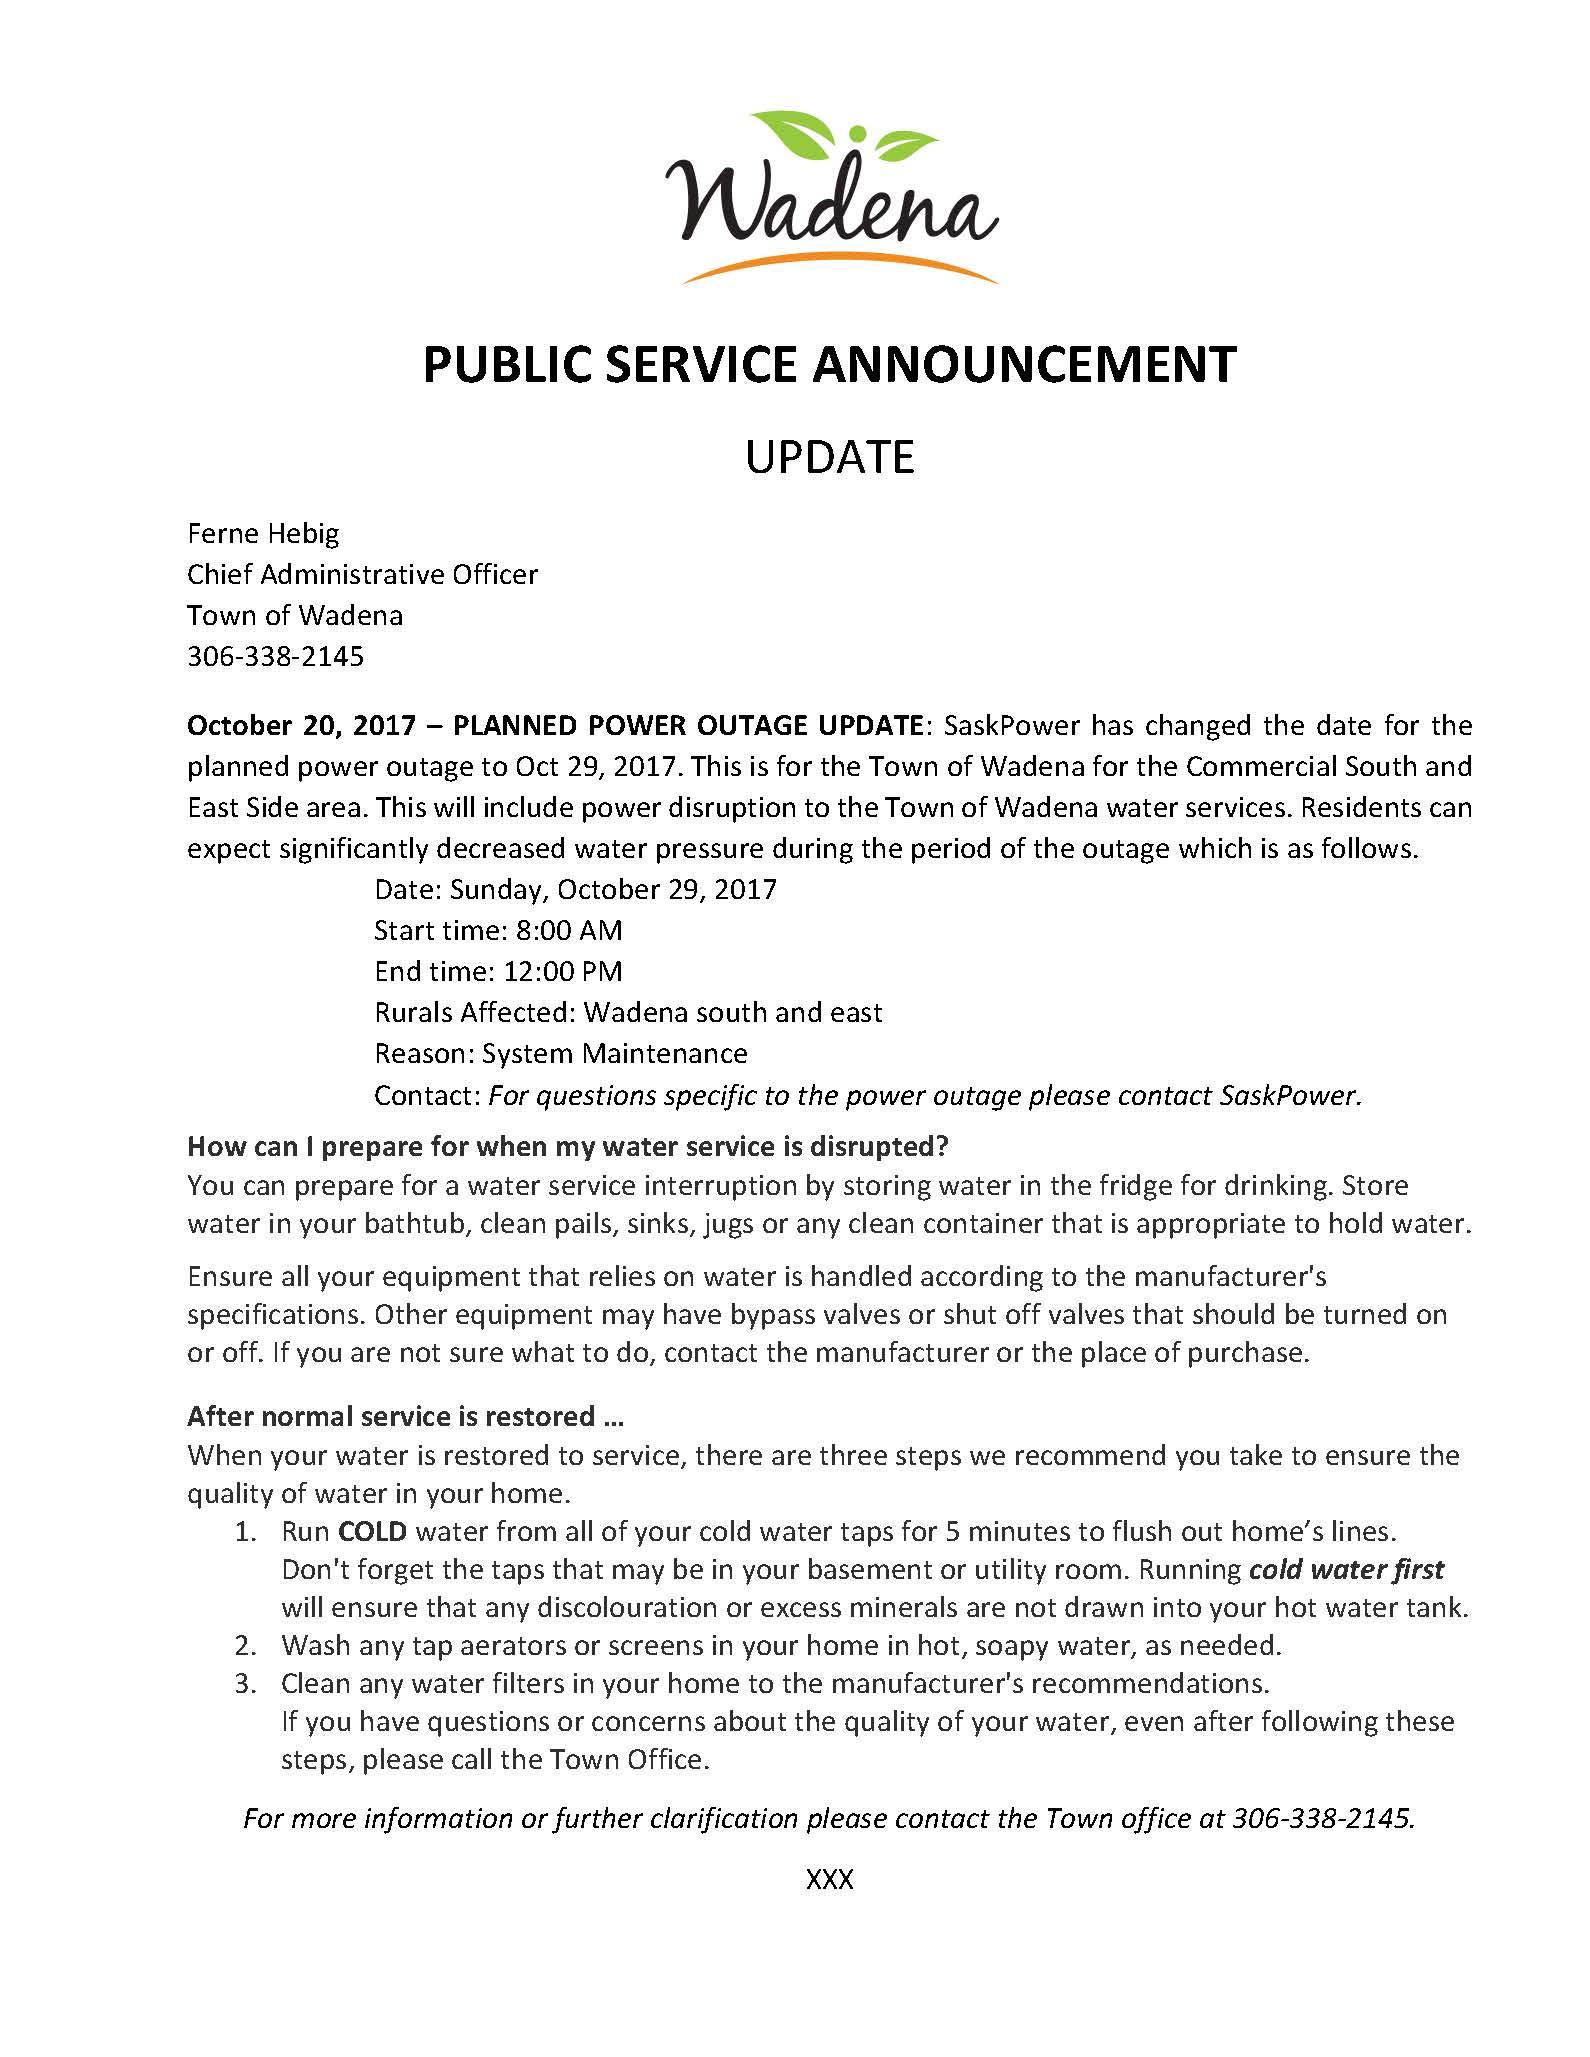 PSA - 2017-10-20 -UPDATE Planned Power Outage